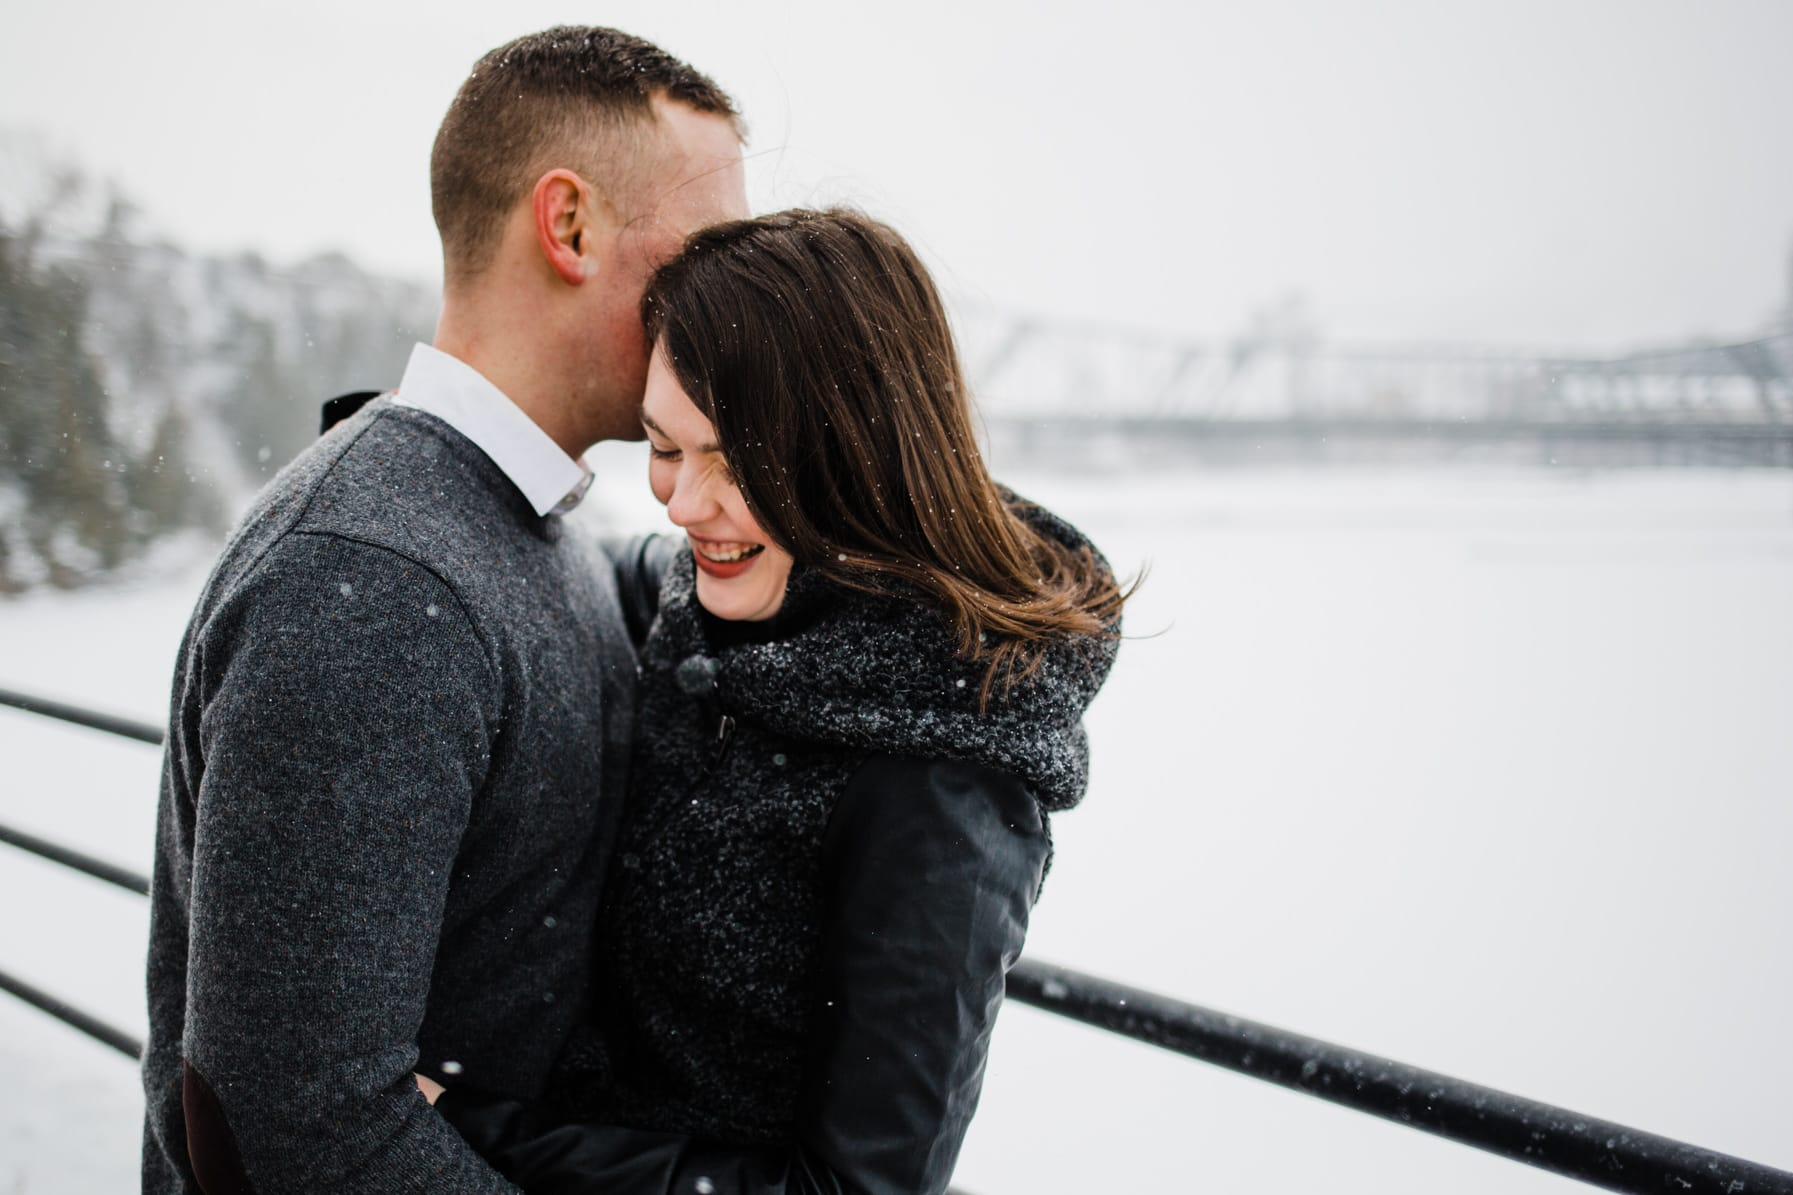 Downtown Ottawa Engagement Session - Couple laughs together